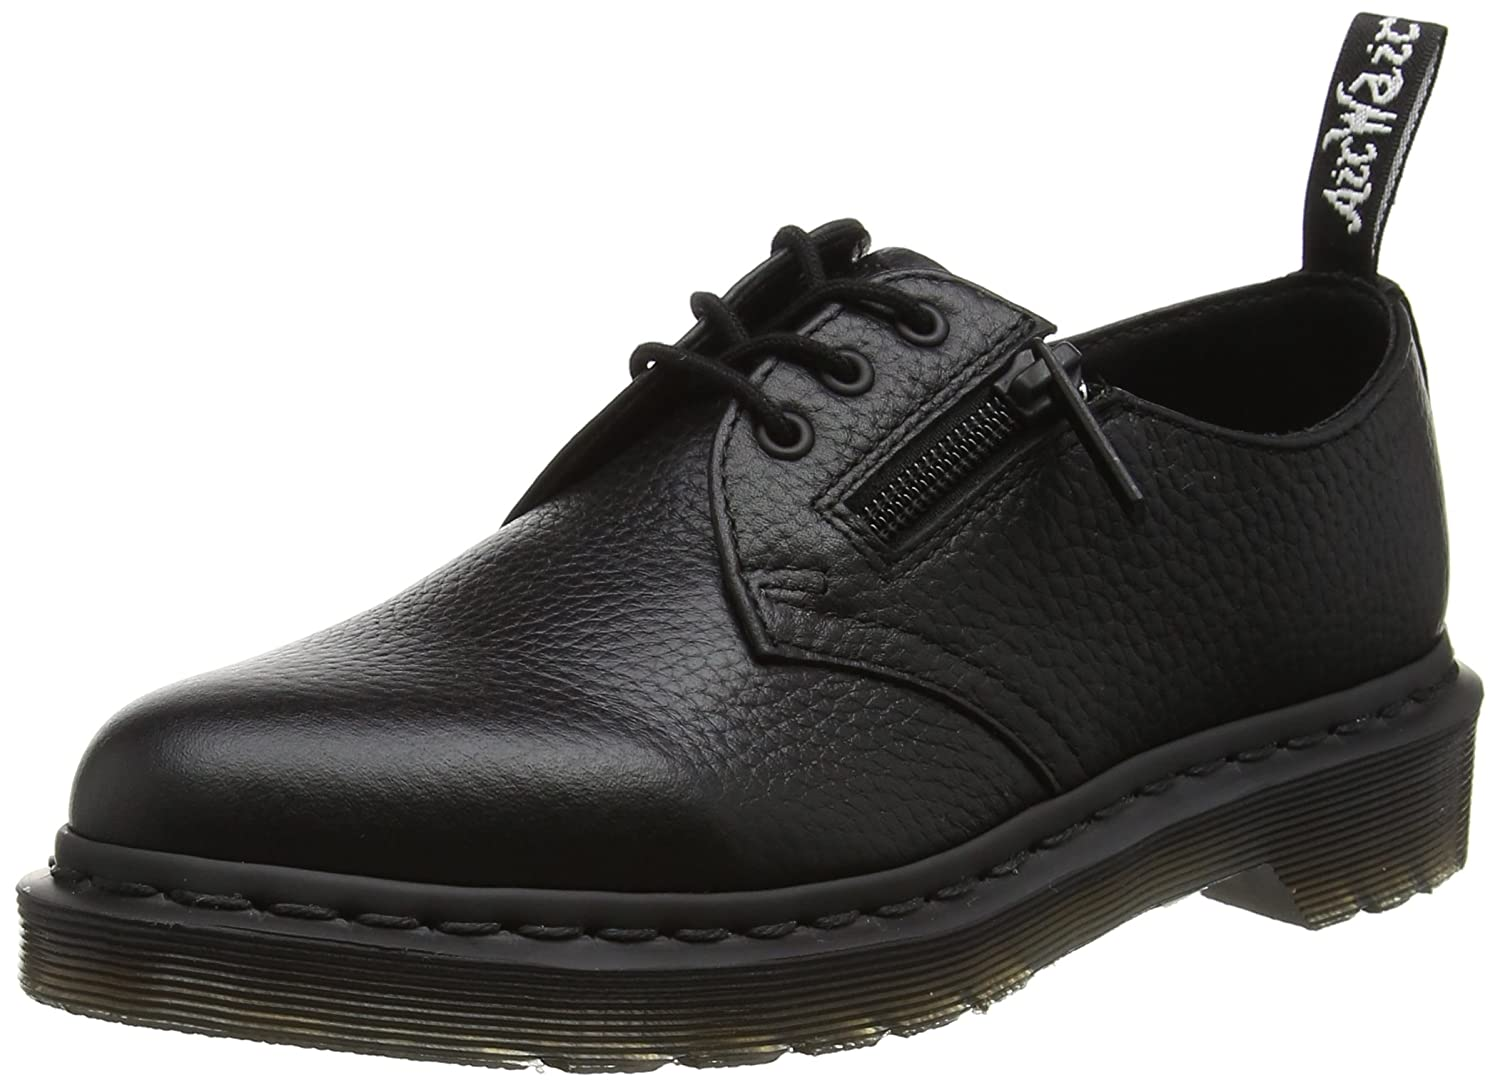 Dr. Martens Women's 1461 W/Zip Oxford B01IDSAPSW 6 UK/8 B US|Black